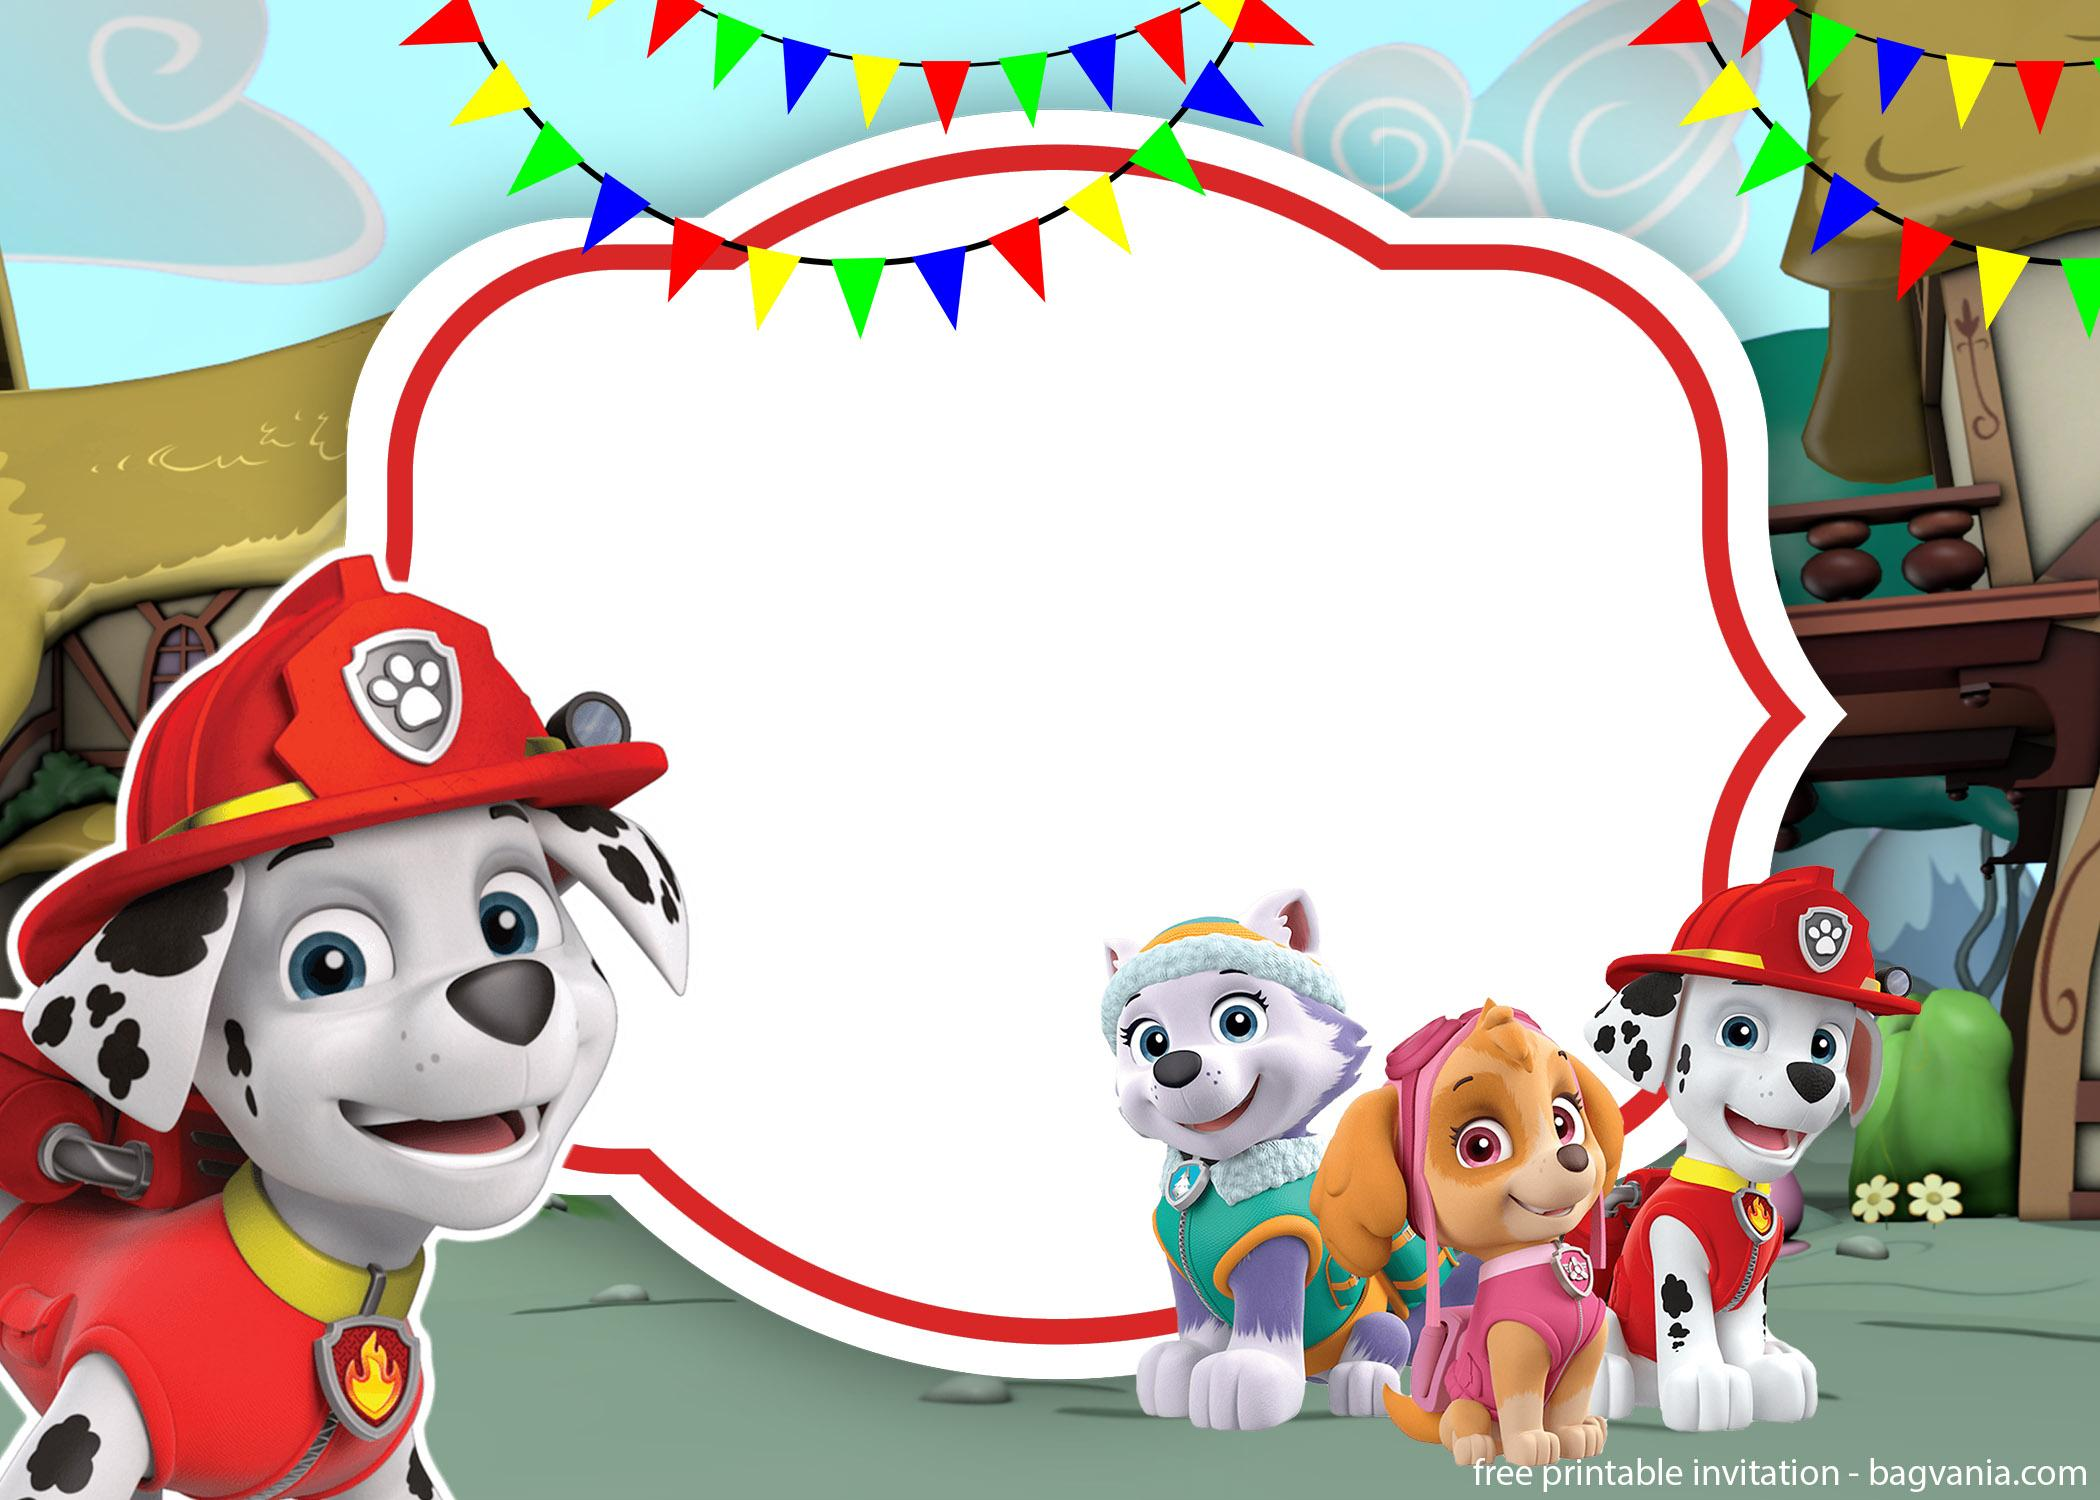 Free Printable All Characters Paw Patrol Invitation Template